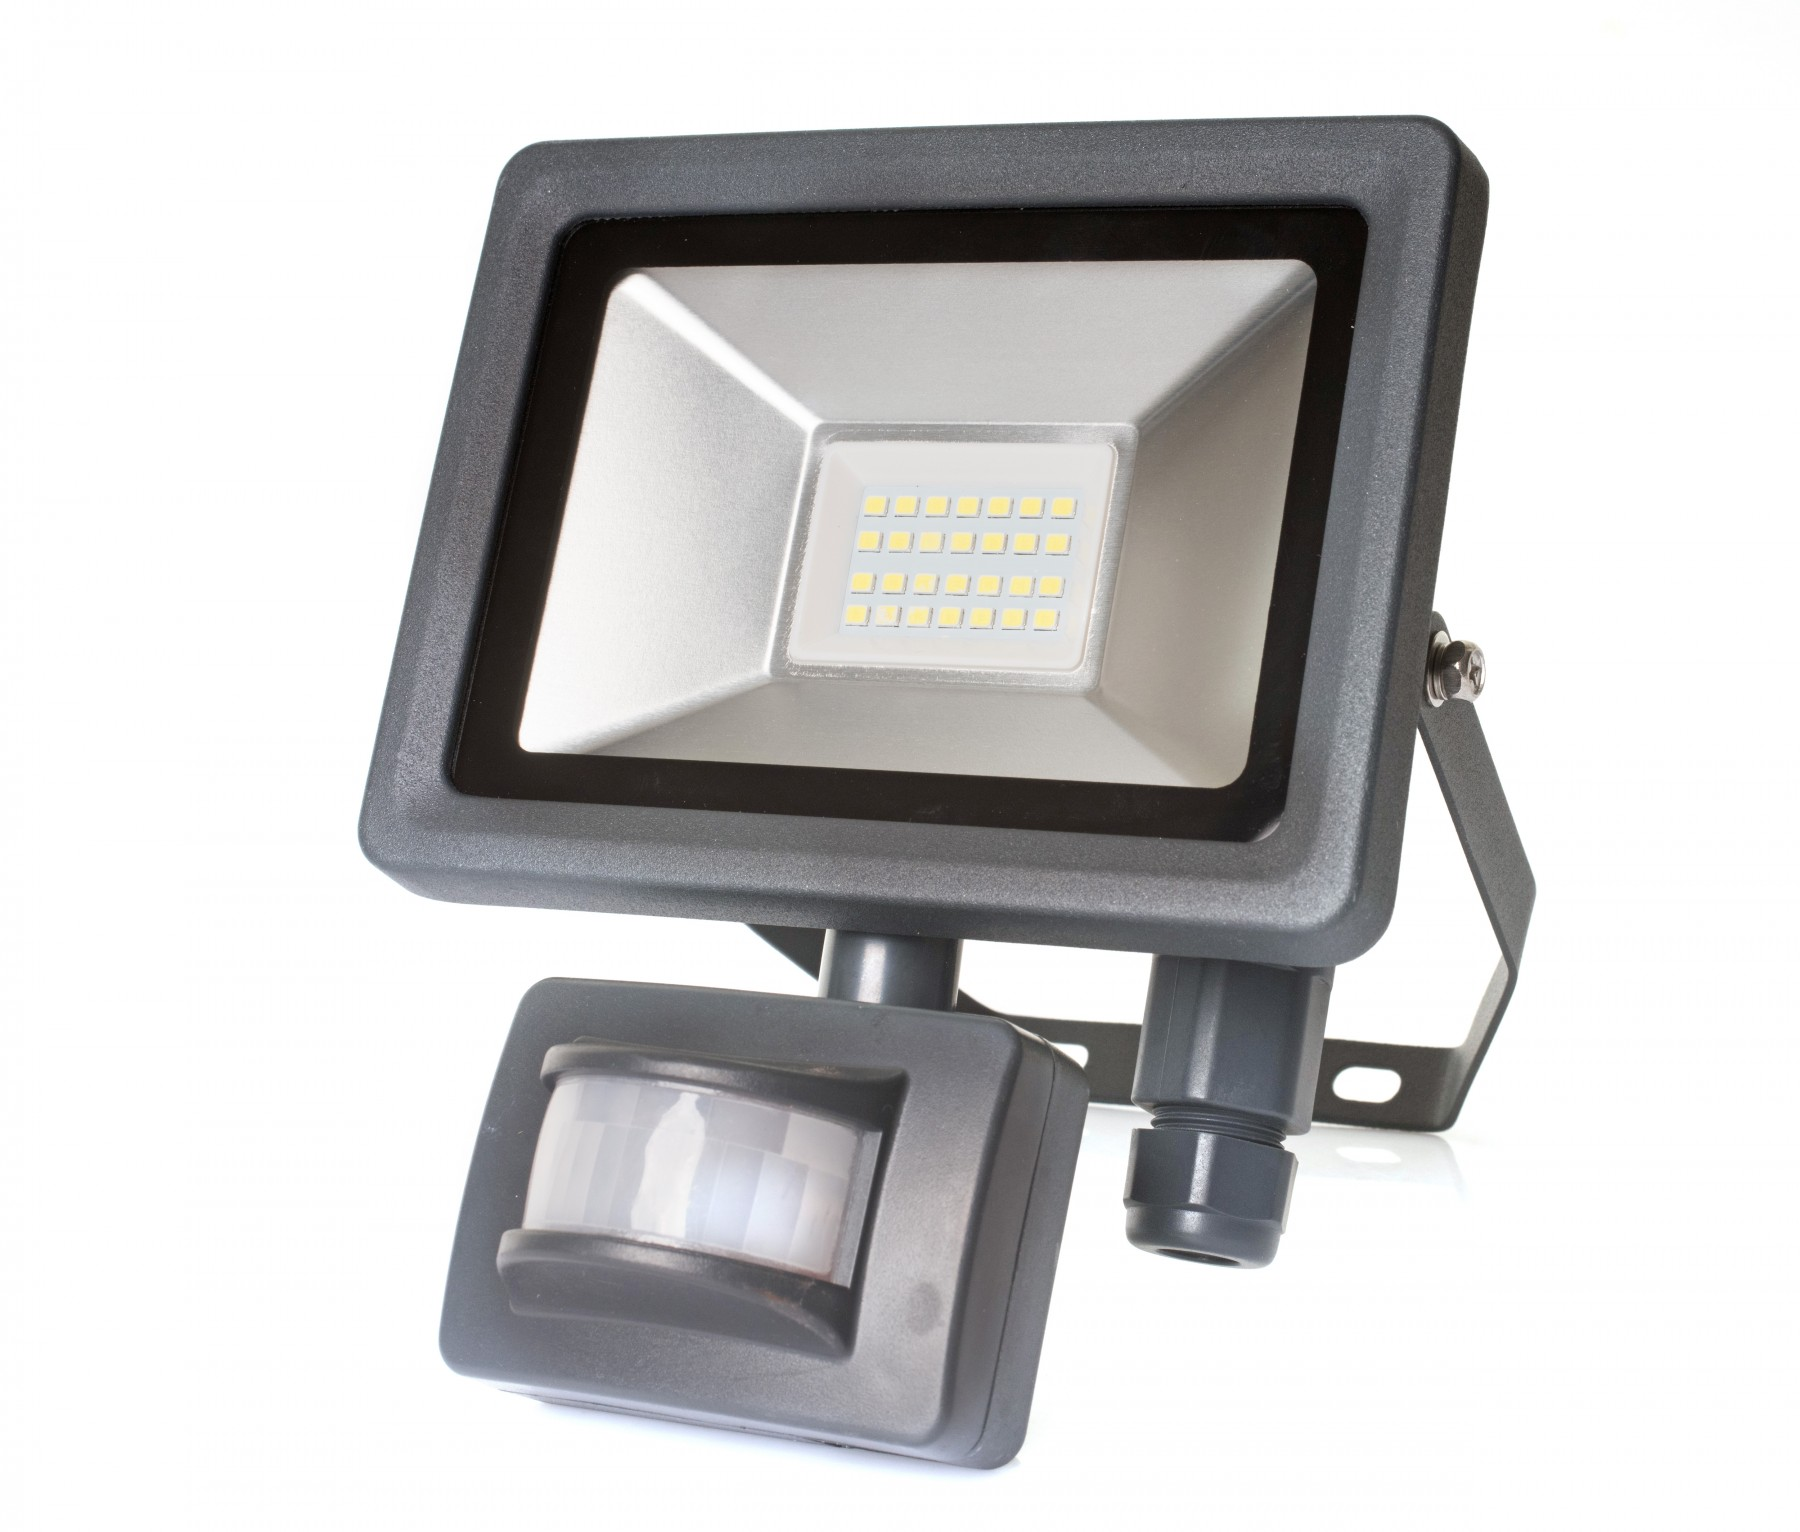 home security lighting - Tim Kyle